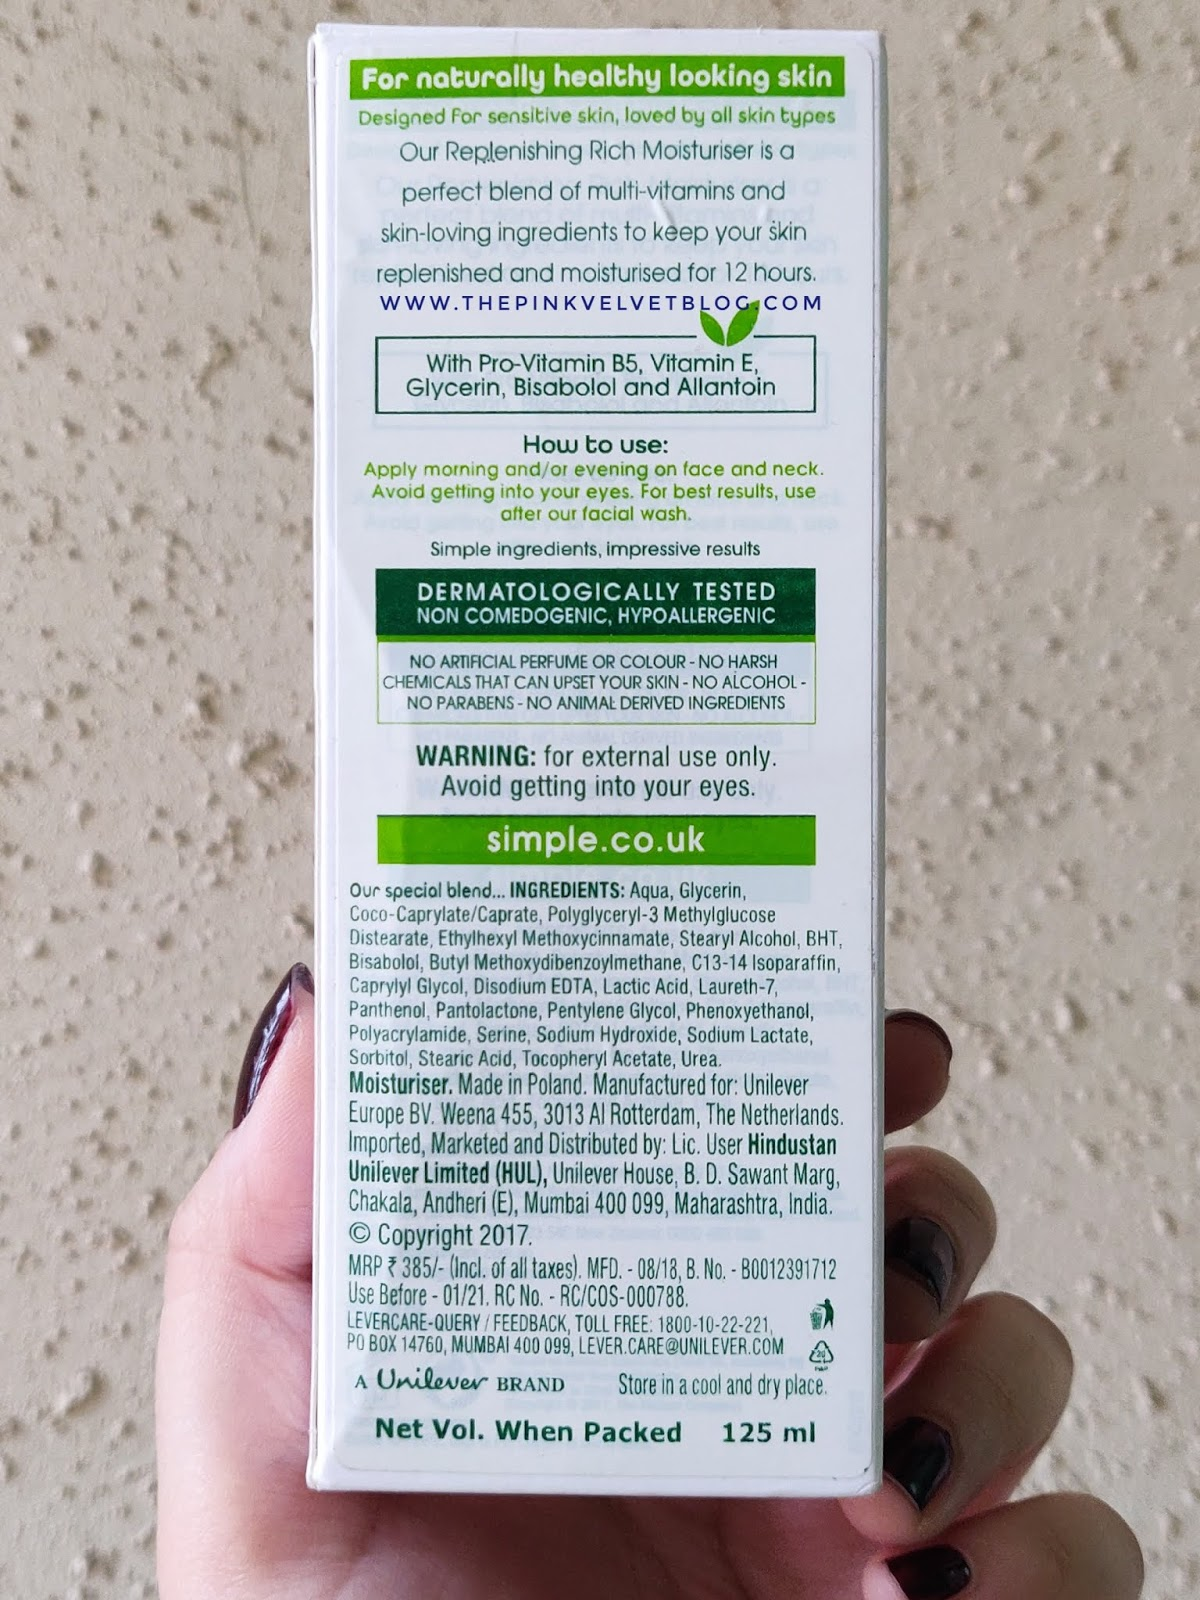 Simple Replenishing Rich Moisturizer - Review | Sensitive Skin Experts - Ingredients